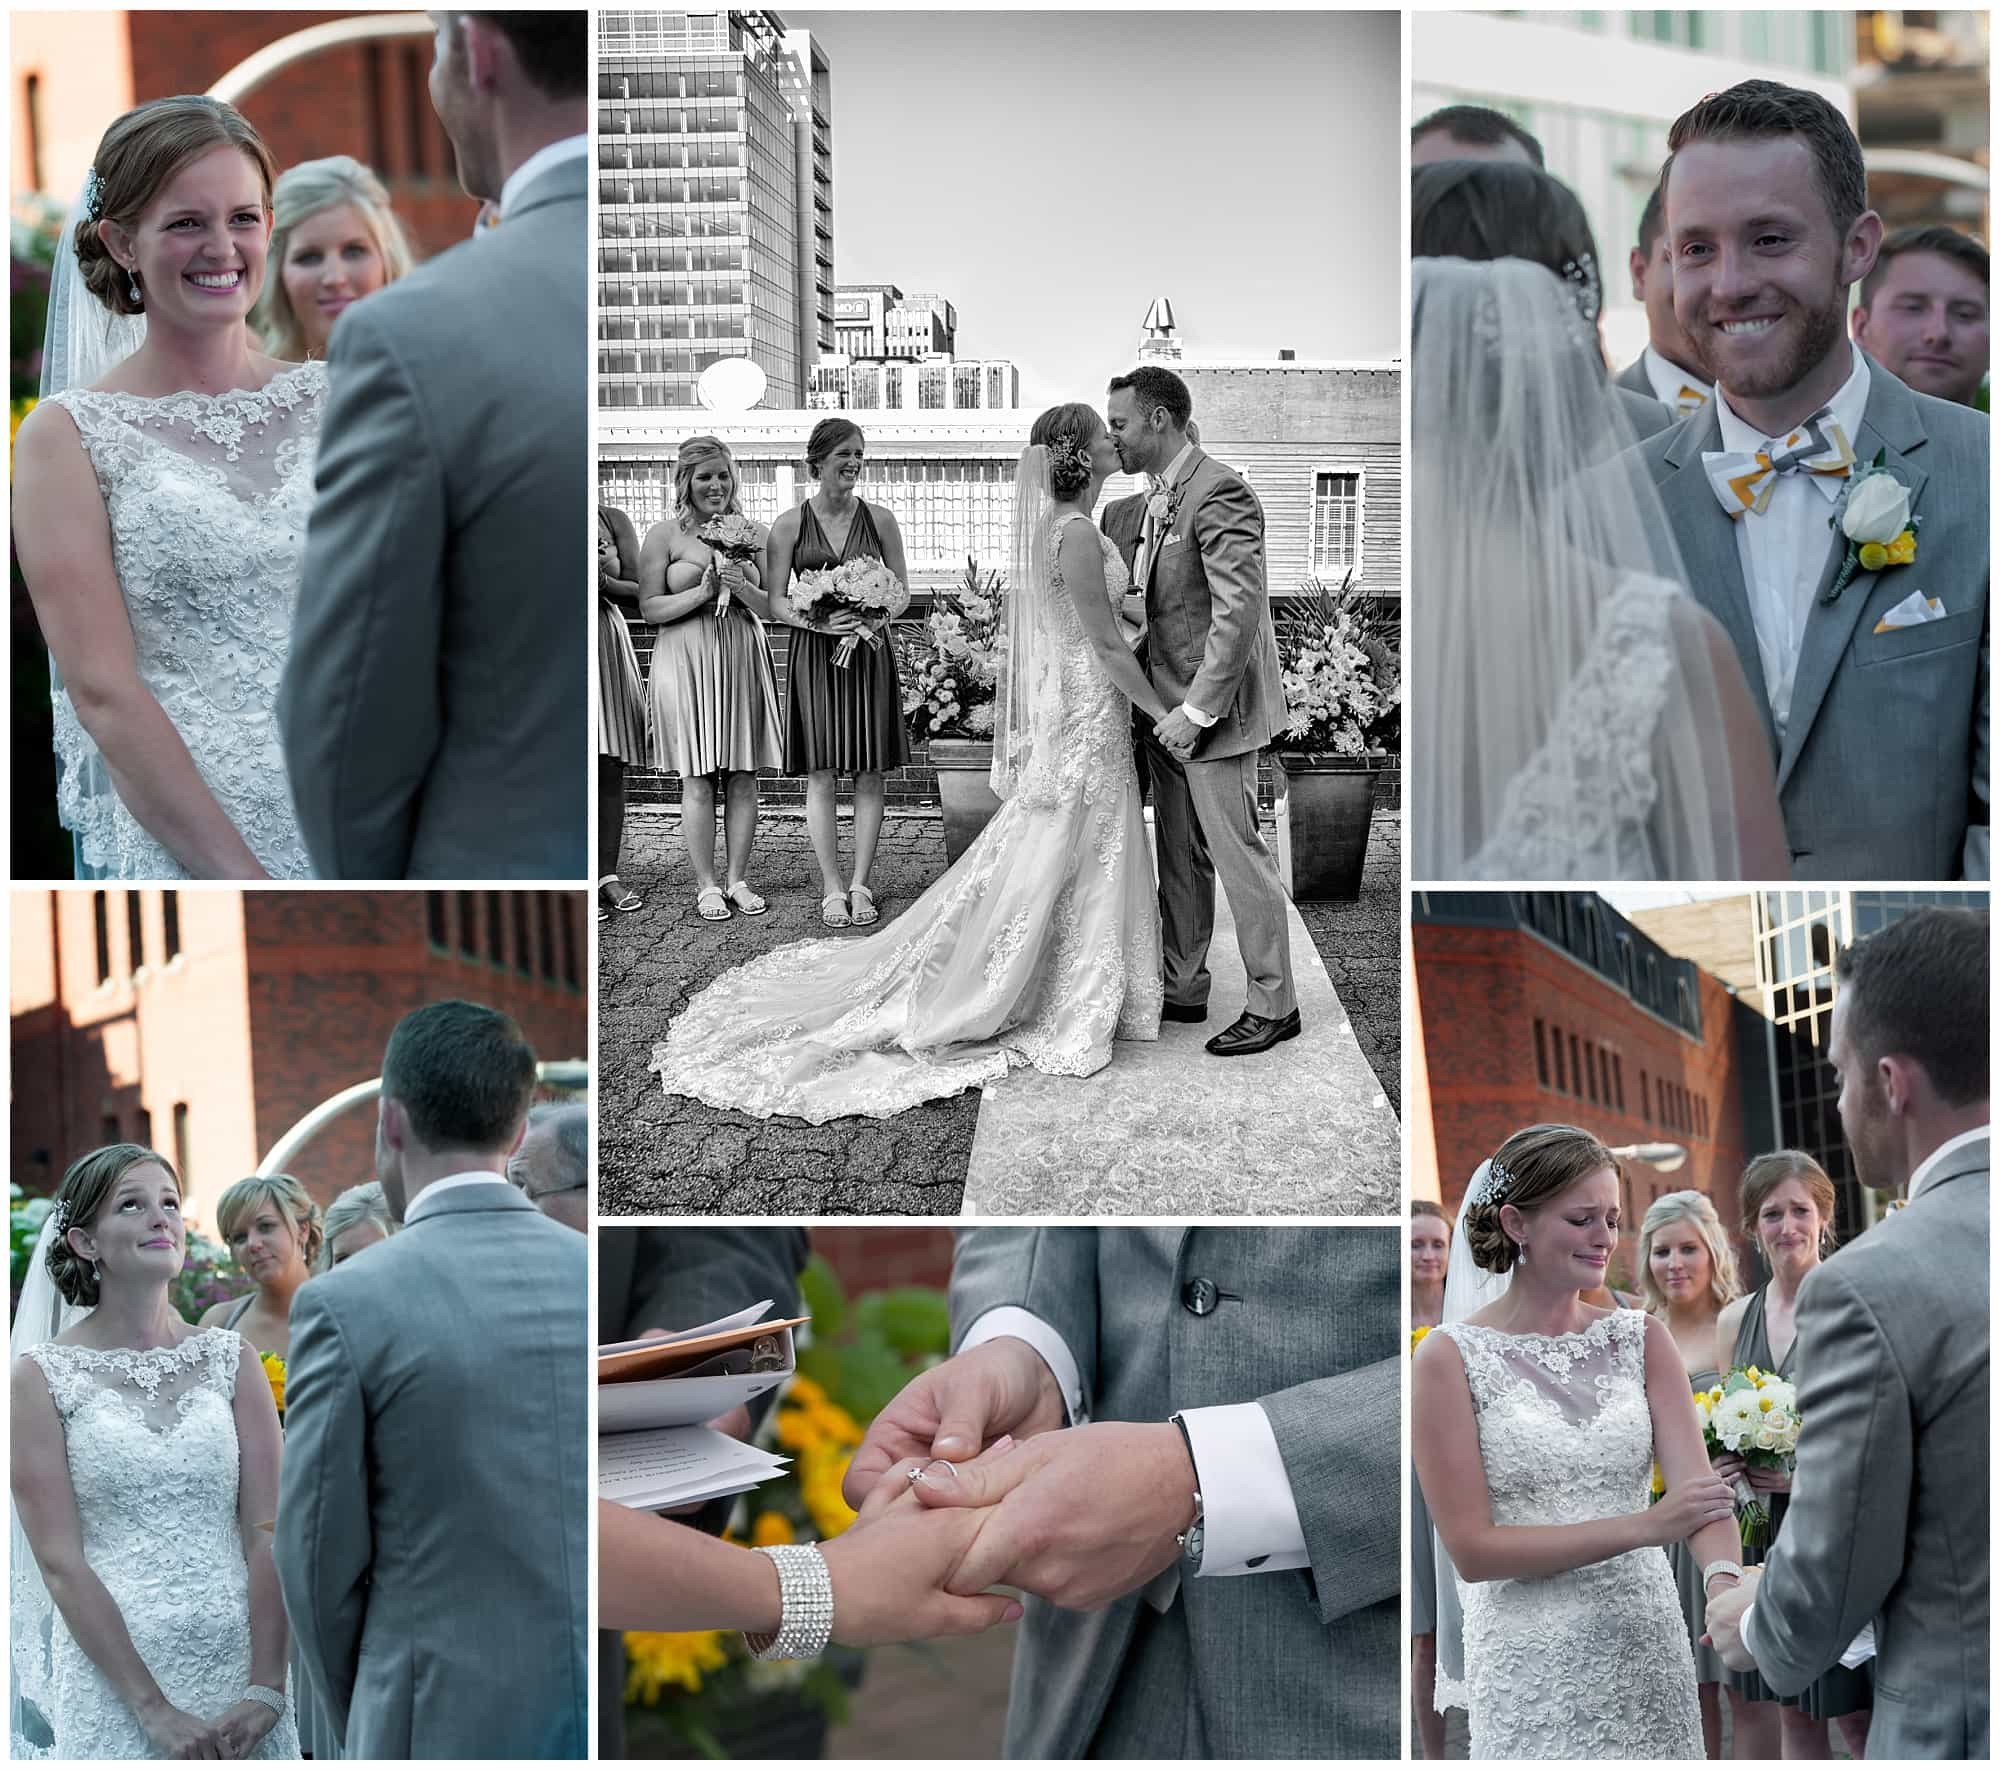 The bride and groom have many emotional moments during their wedding ceremony at Prince George Hotel in Halifax.